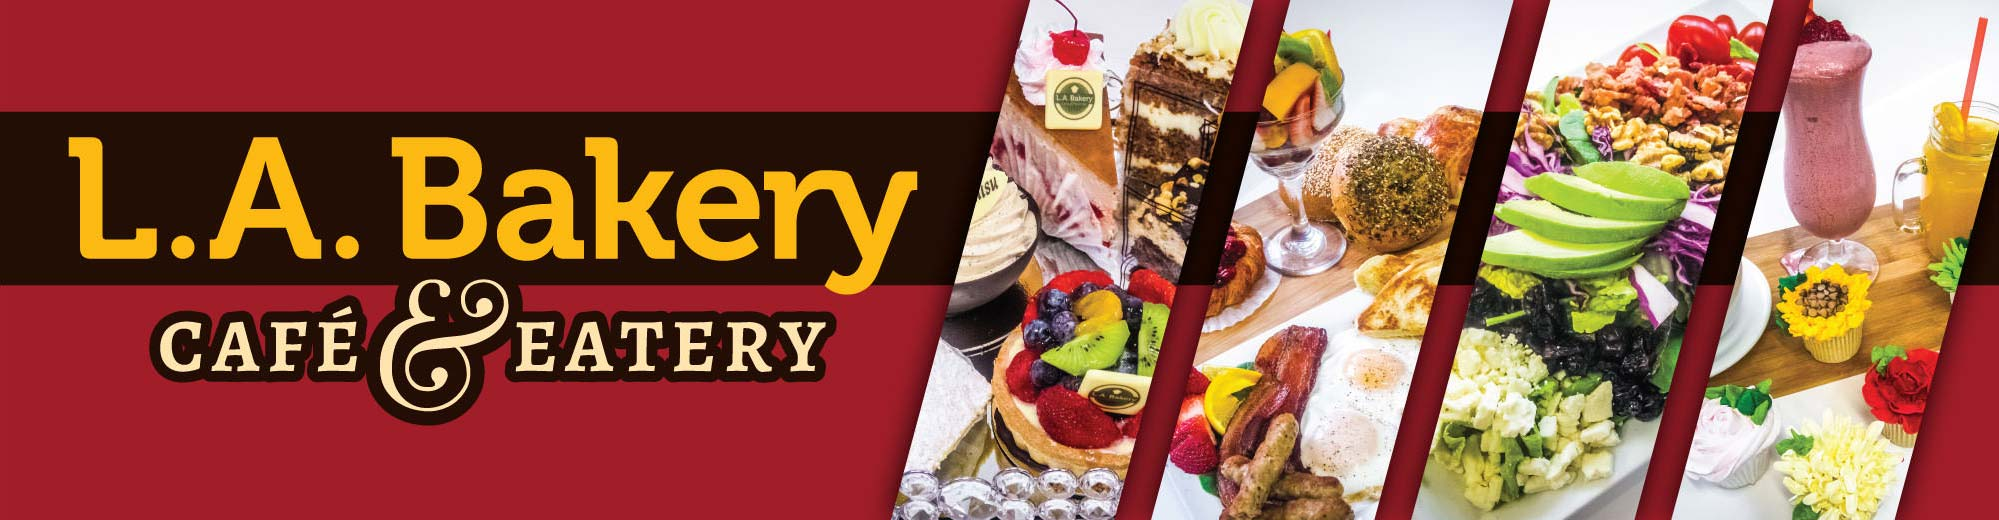 LA Bakery - Misc Products Banner